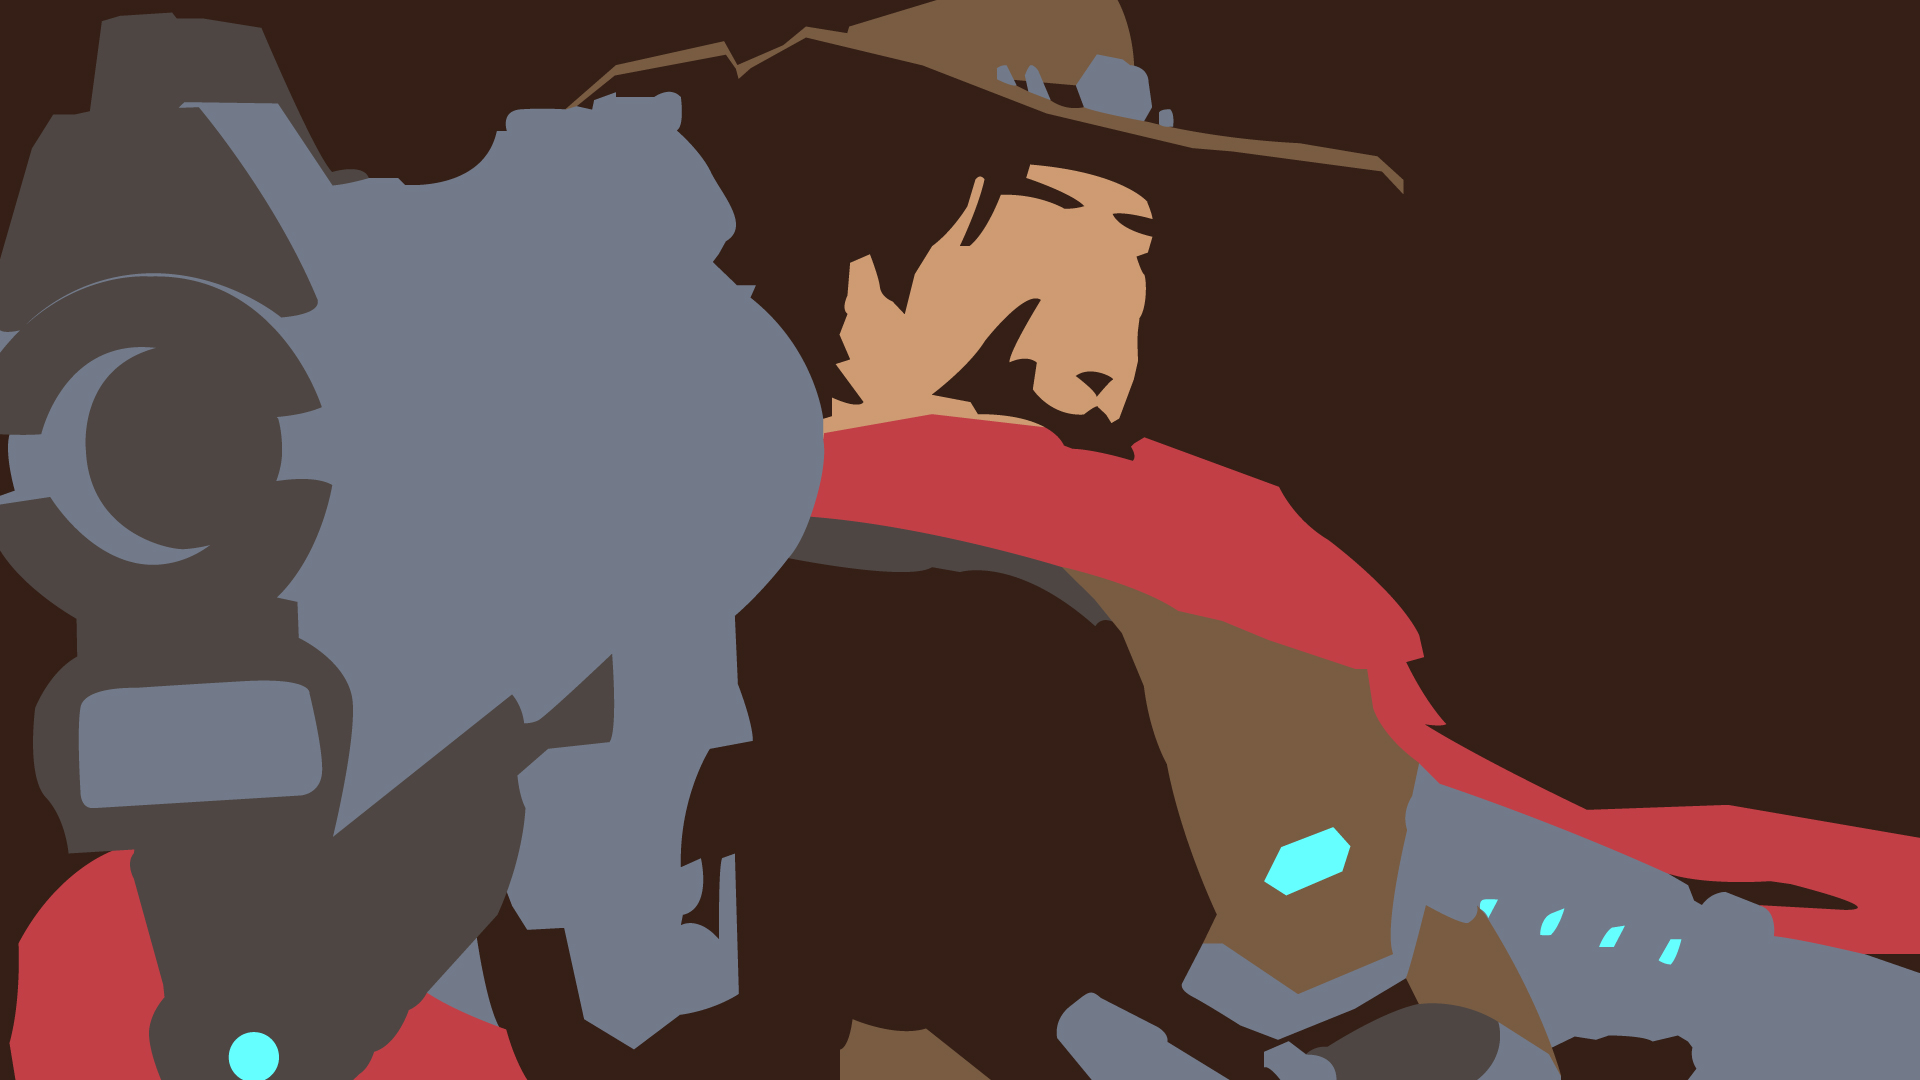 Overwatch mccree clipart clip art free Overwatch Vector Wallpaper - Mccree by choren64 on DeviantArt clip art free